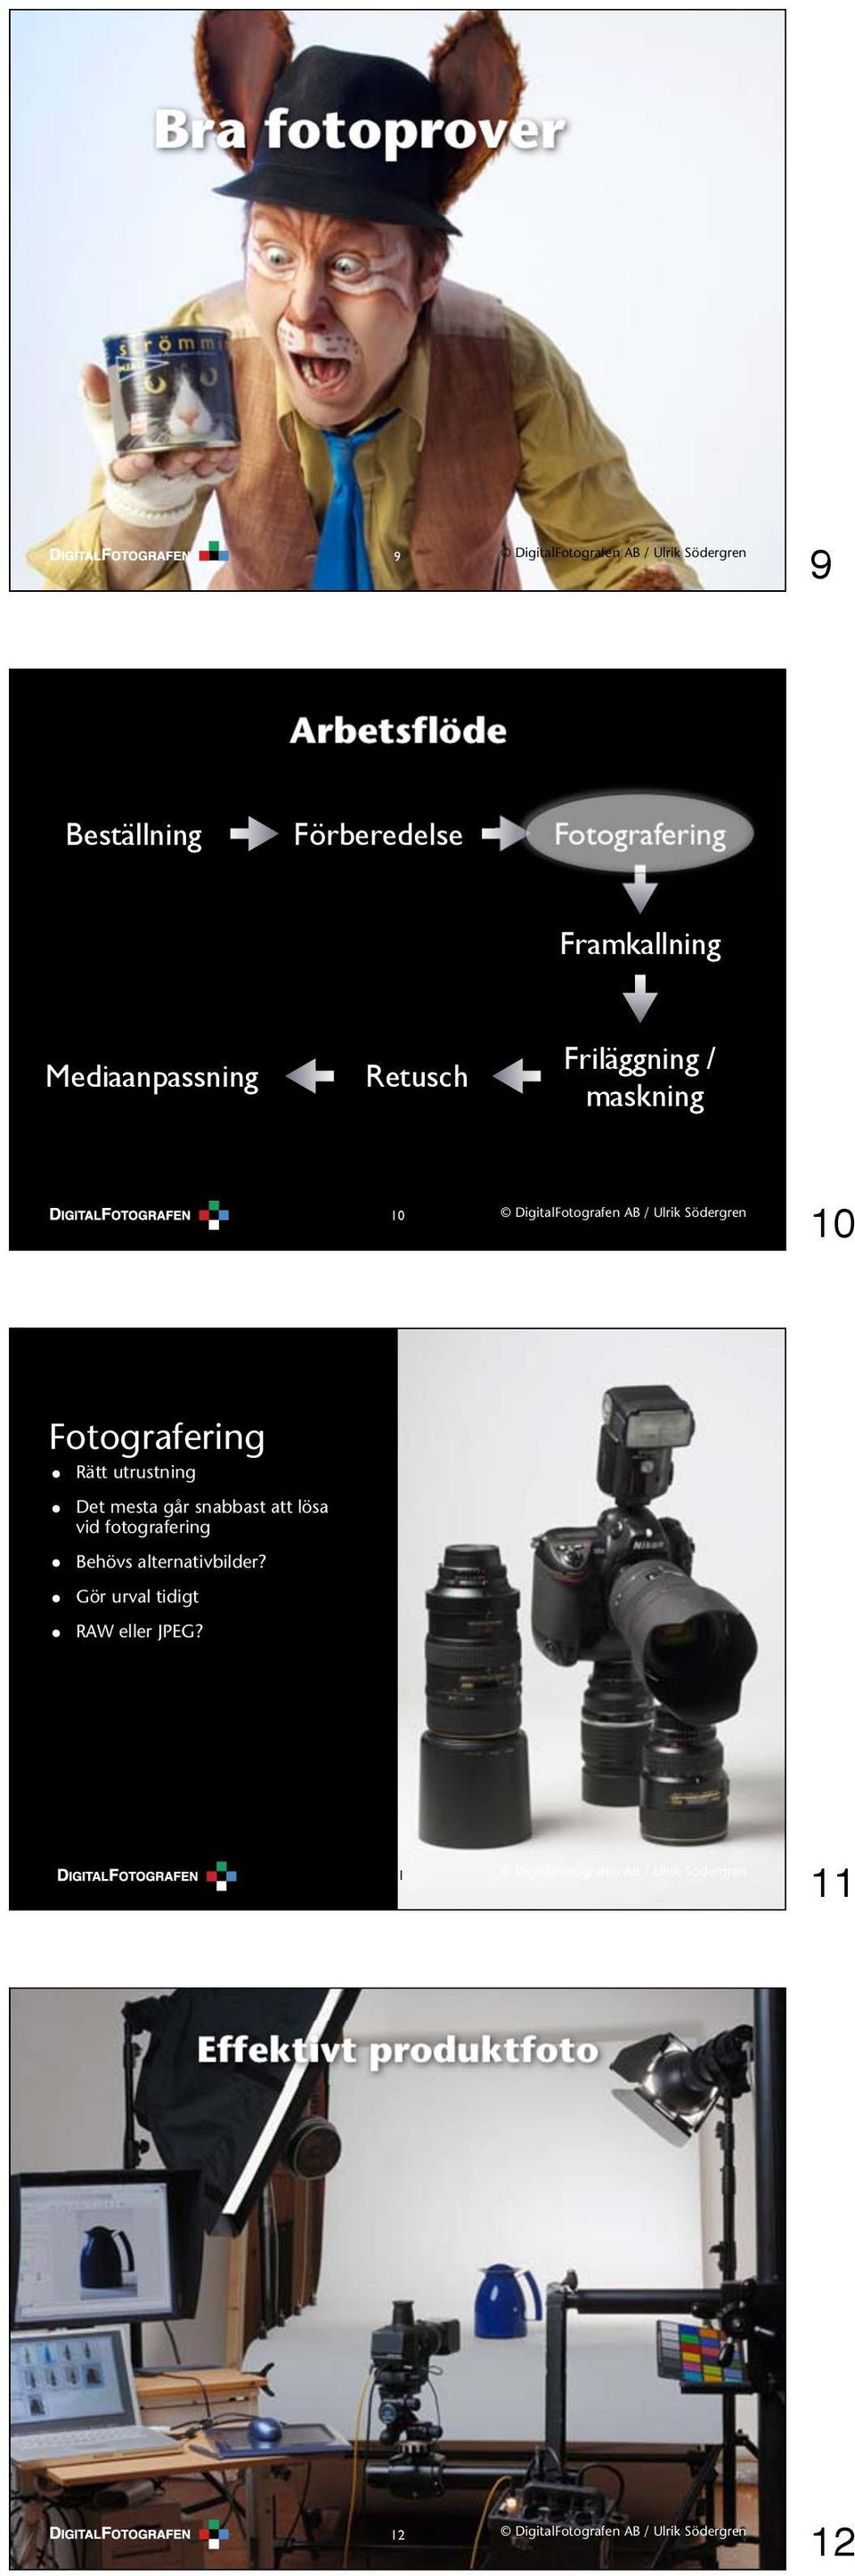 fotografering Behövs alternativbilder?